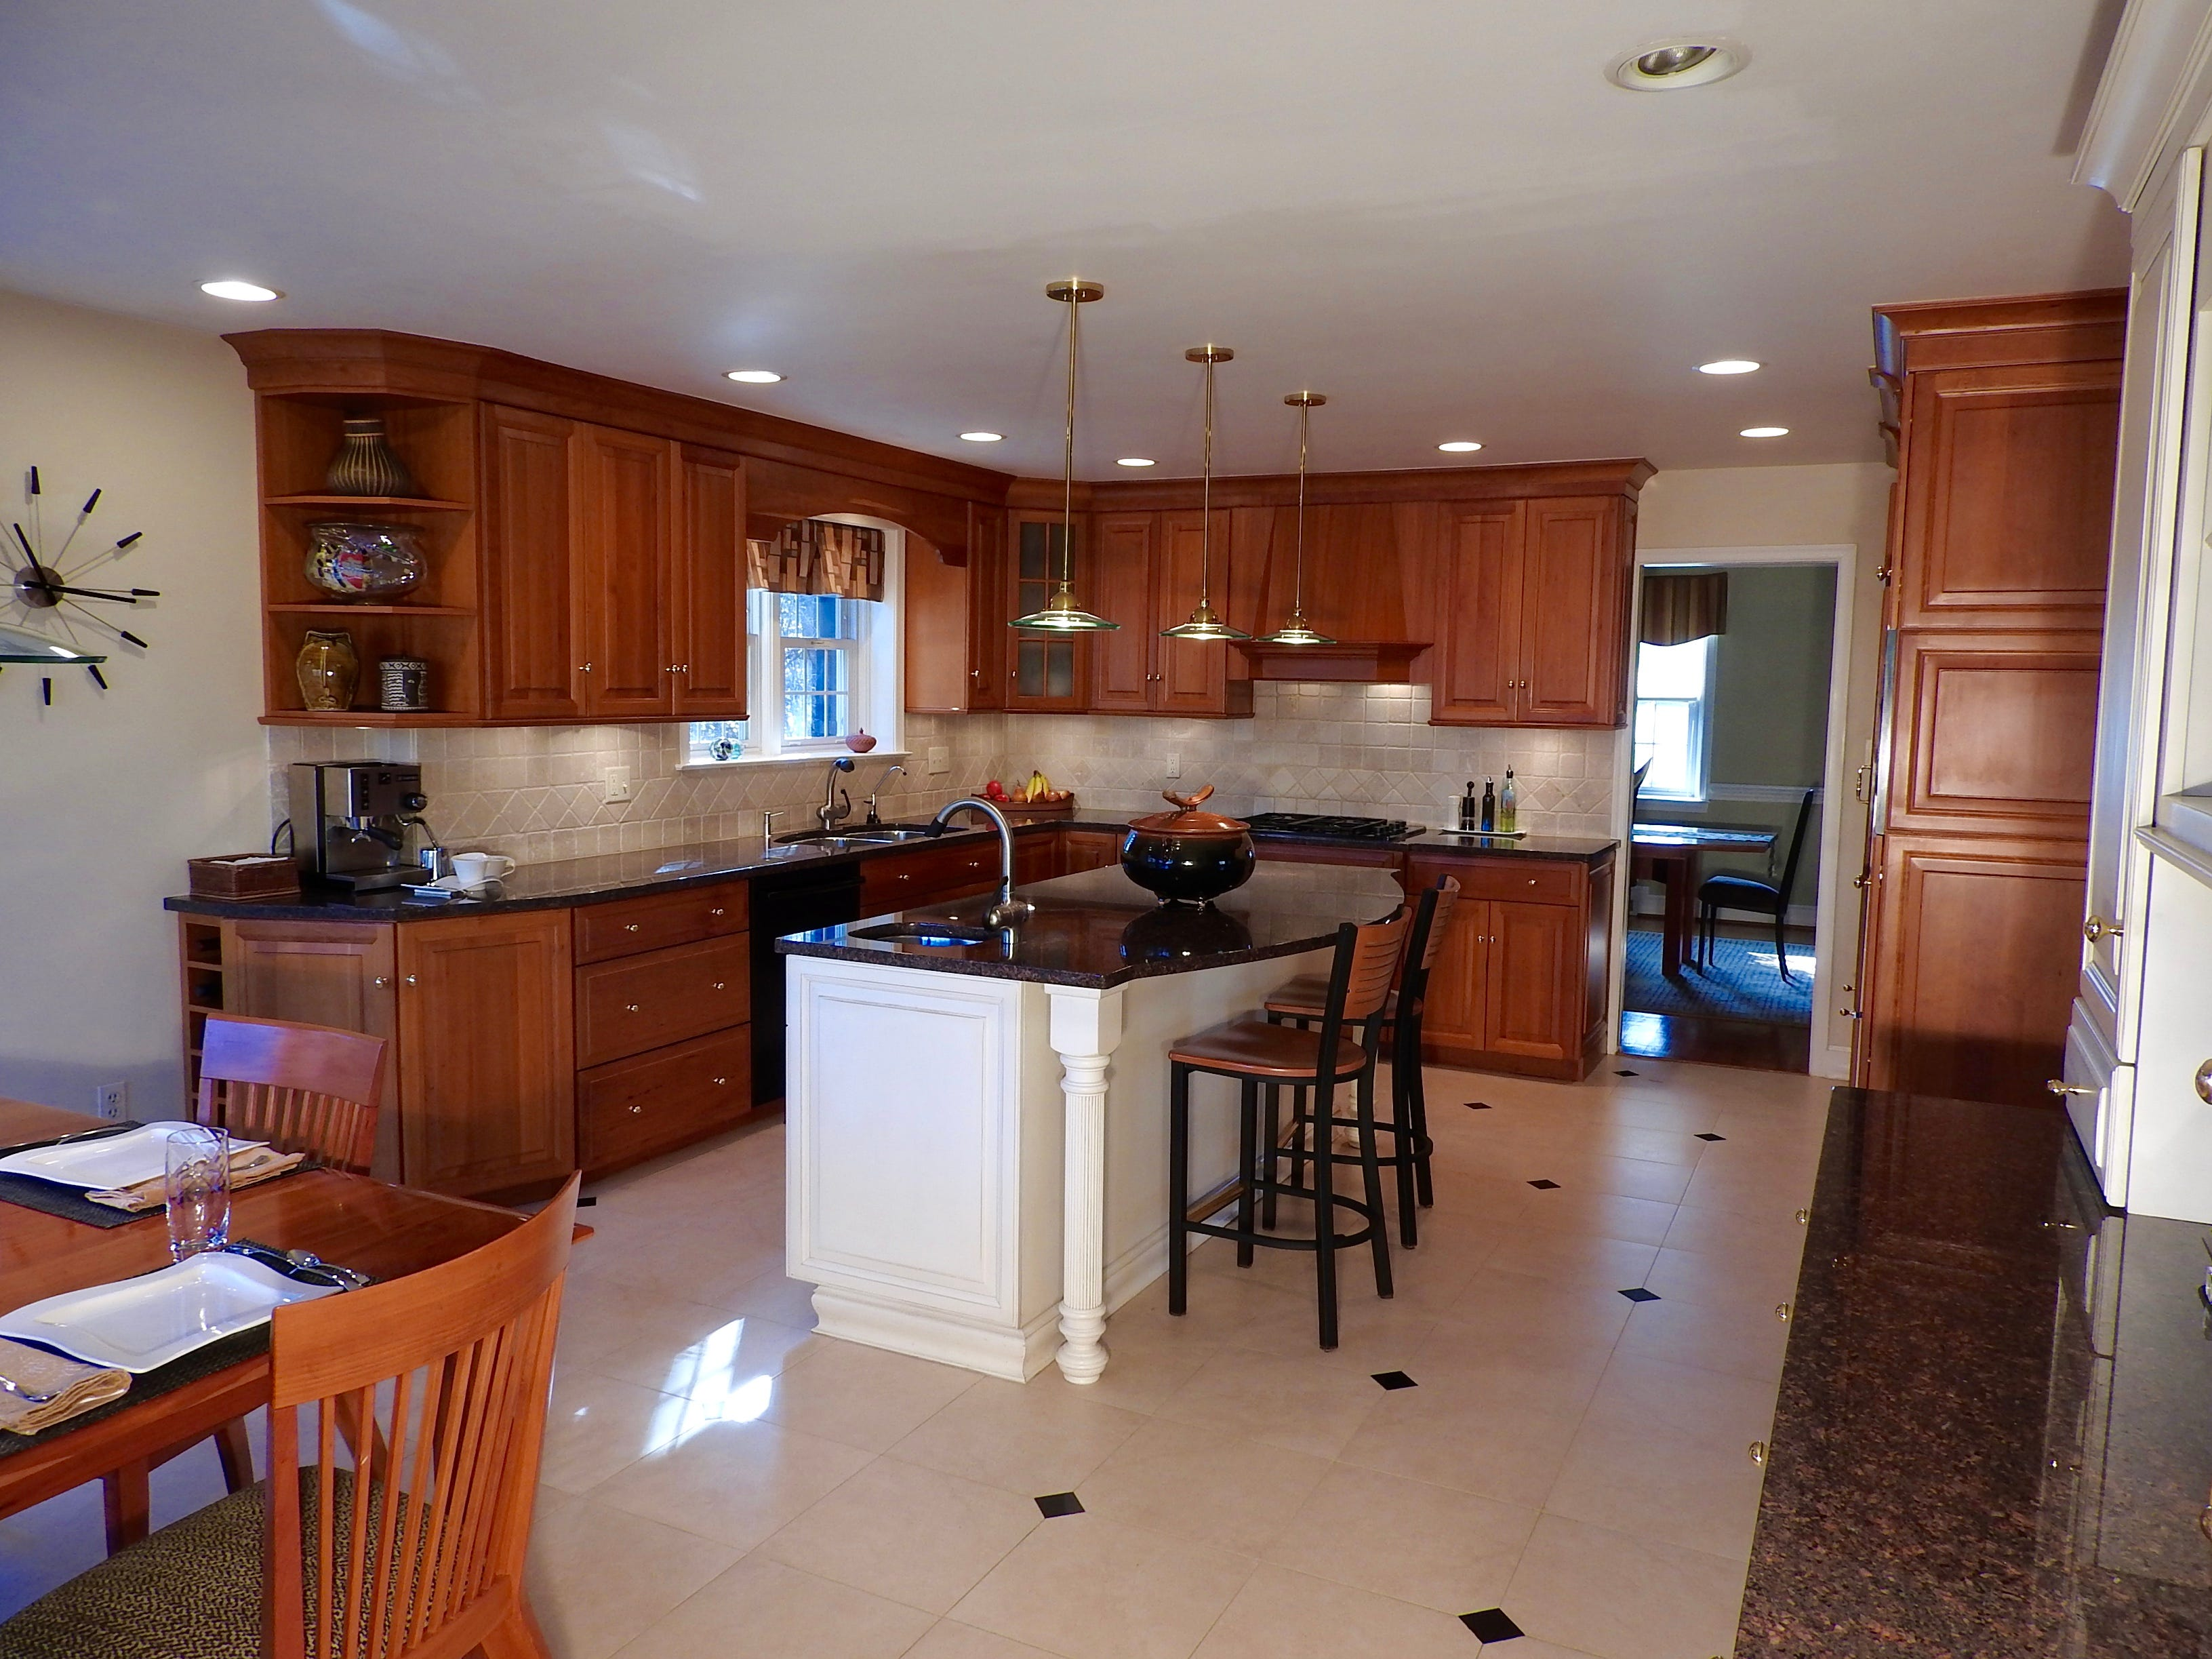 A large eat-in kitchen at 103 Edgewood Road in Alapocas has cherry cabinets and granite countertops.